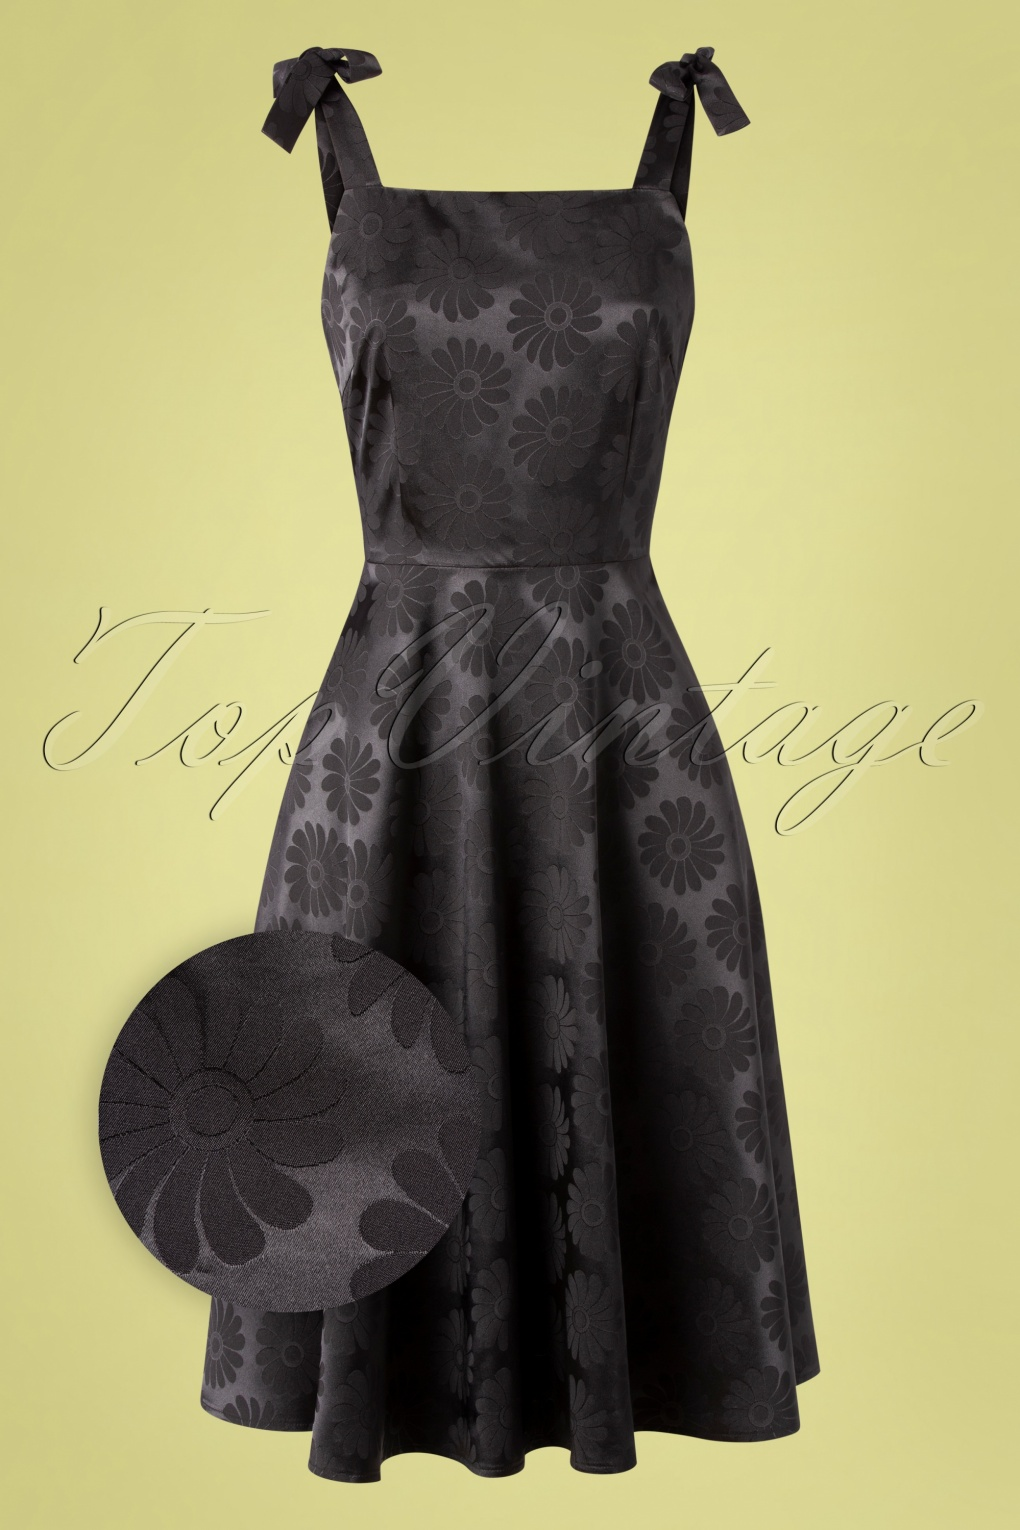 1960s Style Dresses, Clothing, Shoes UK 50s Begonia Floral Skater Dress in Black £37.93 AT vintagedancer.com